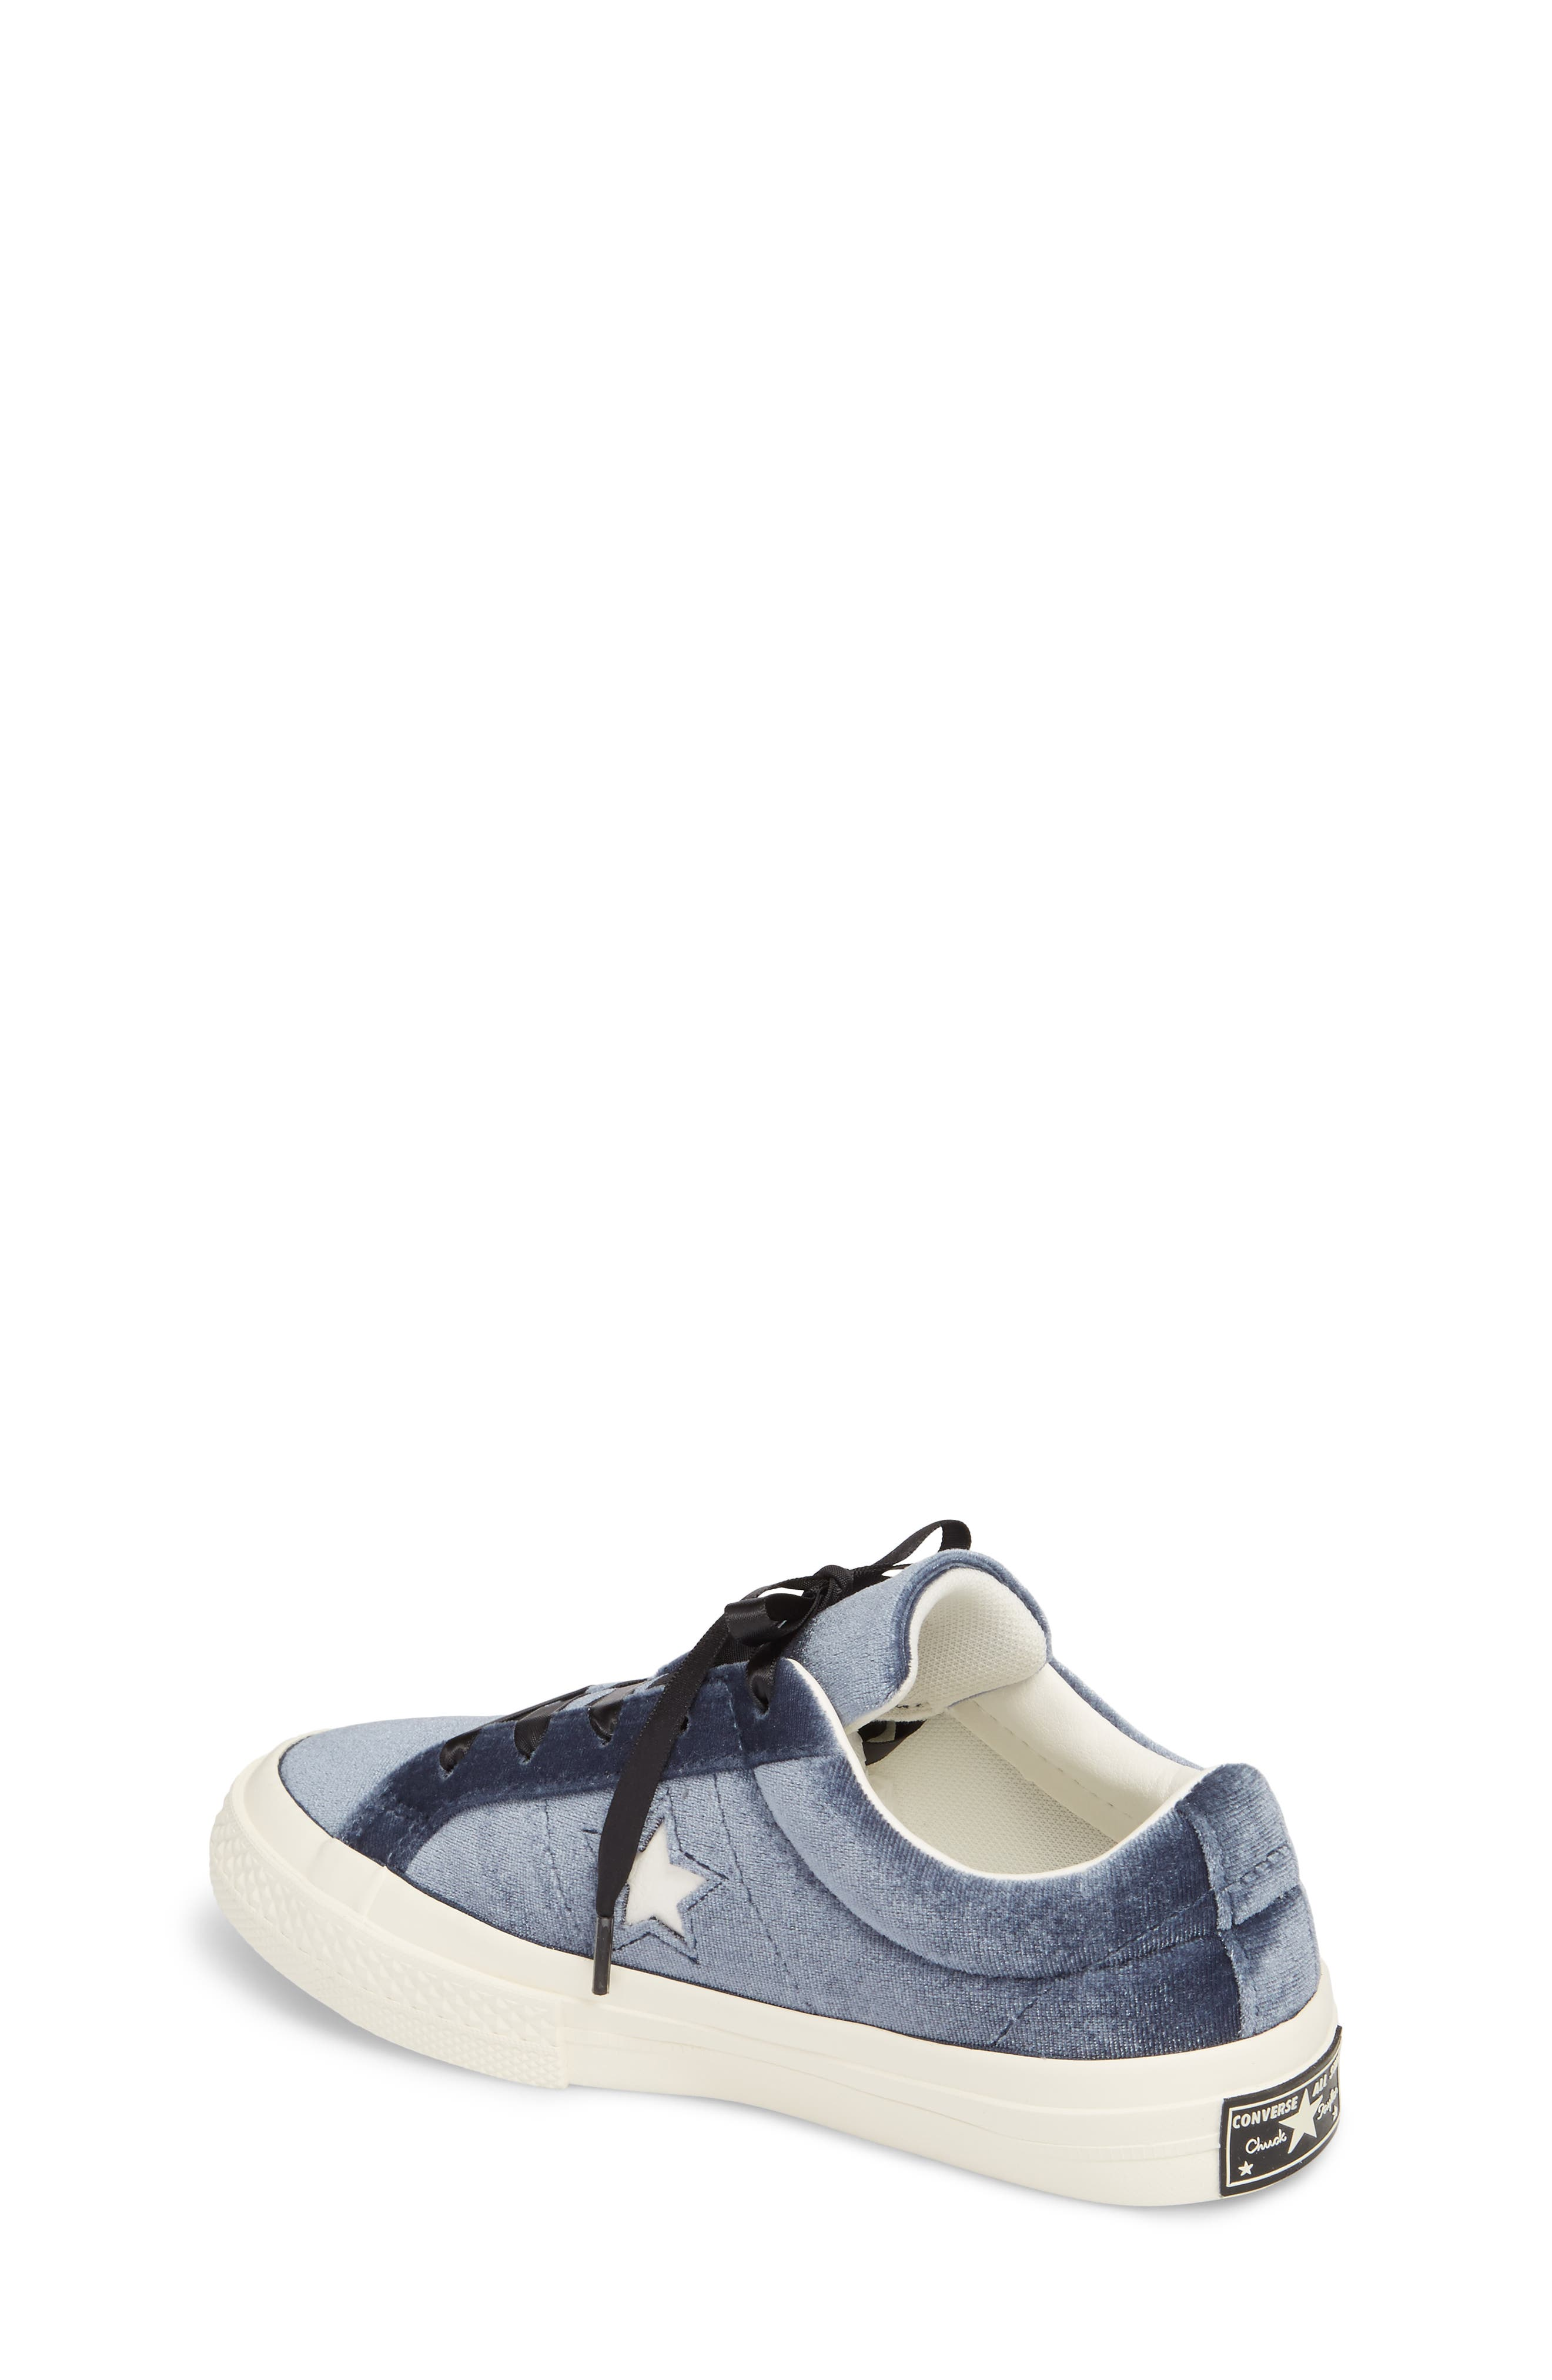 Chuck Taylor<sup>®</sup> All Star<sup>®</sup> One Star Velvet Platform Sneaker,                             Alternate thumbnail 5, color,